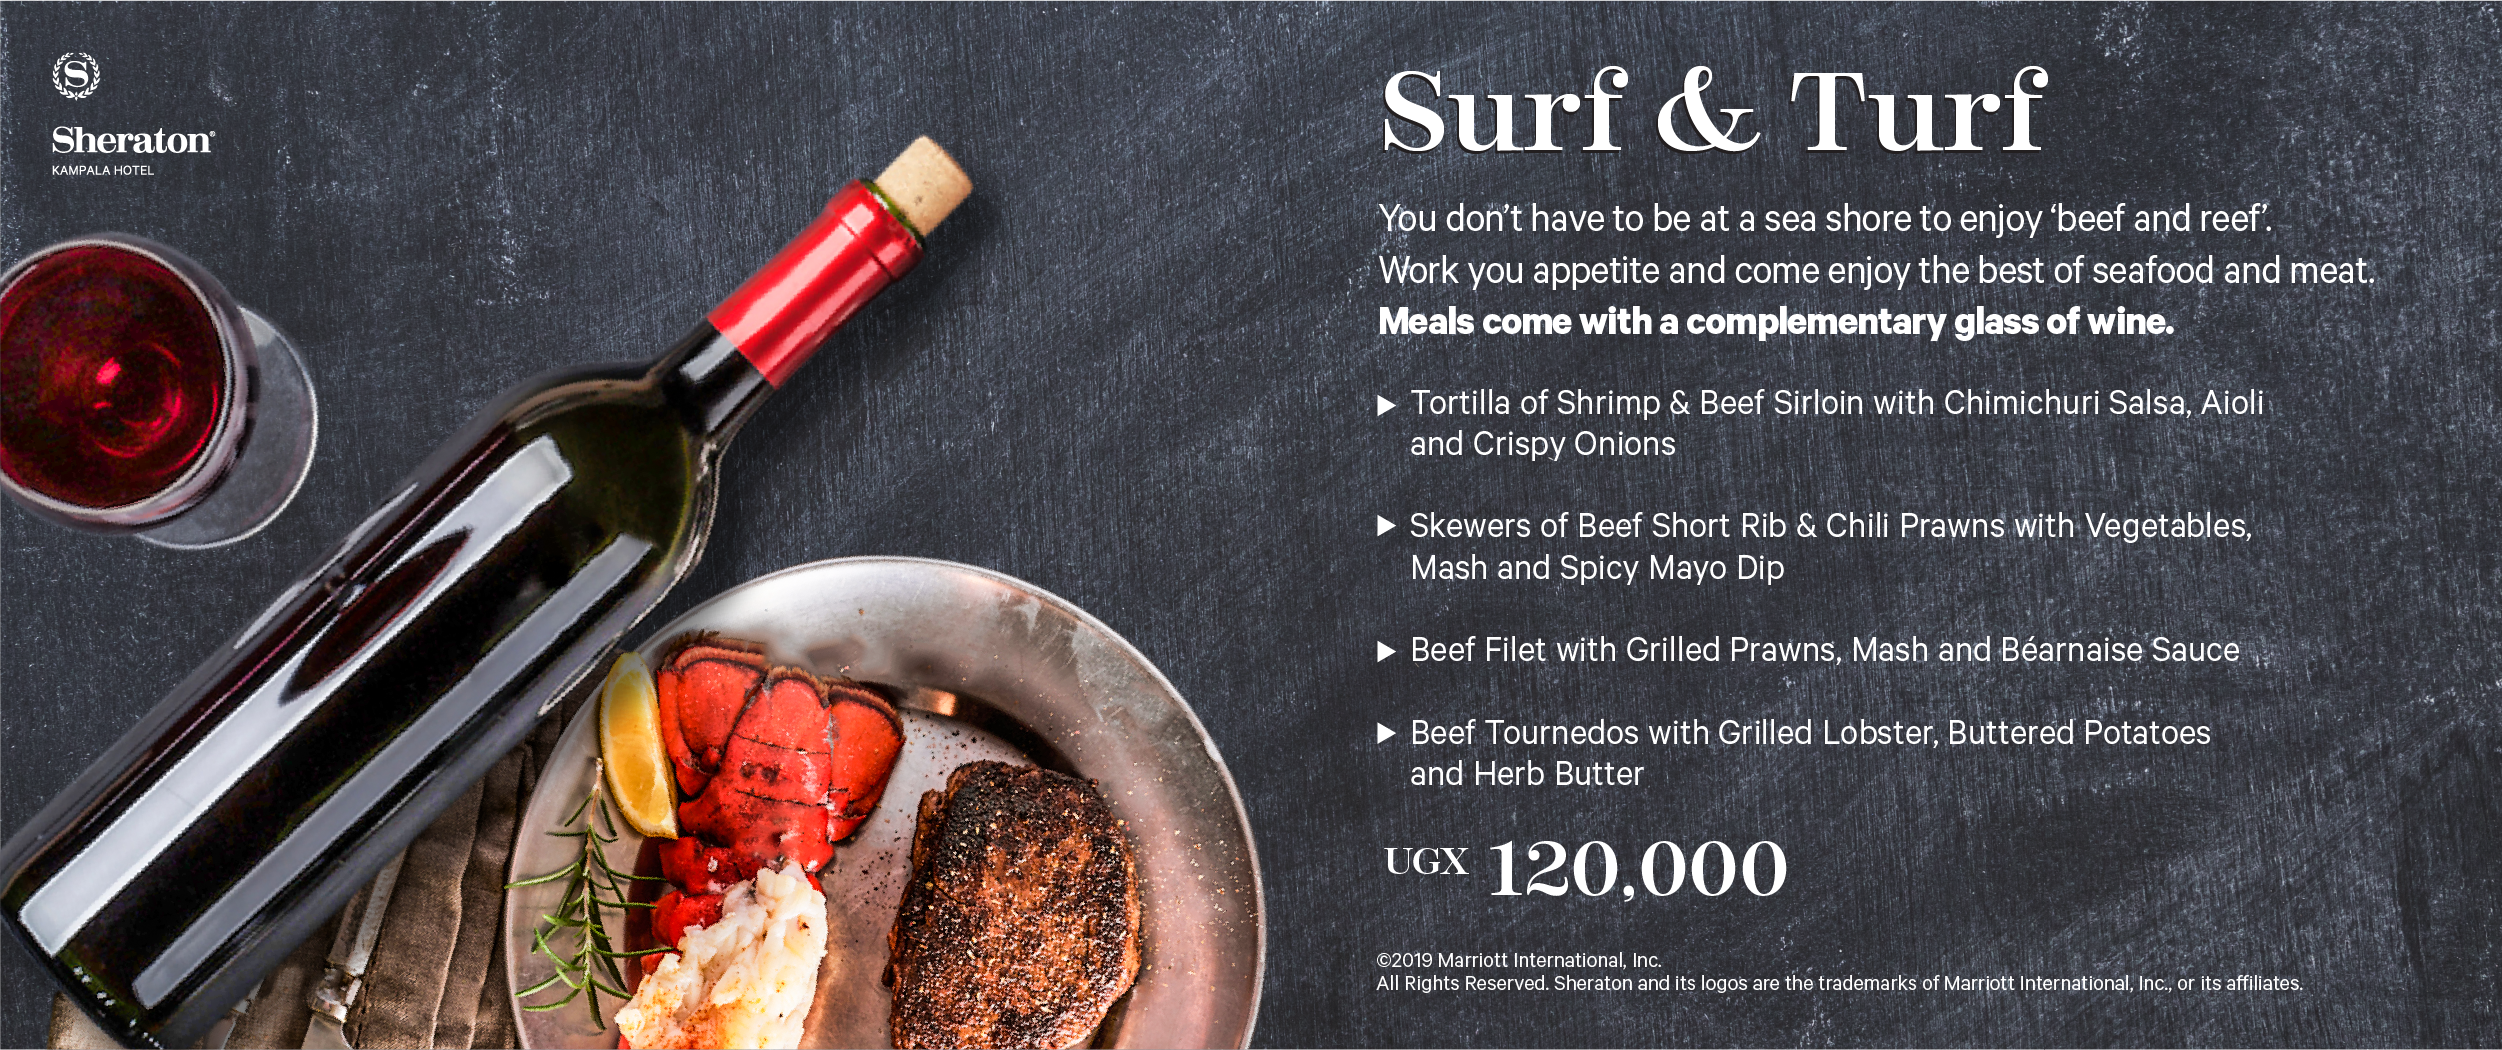 Surf and Turf - only at the Sheraton Kampala Hotel